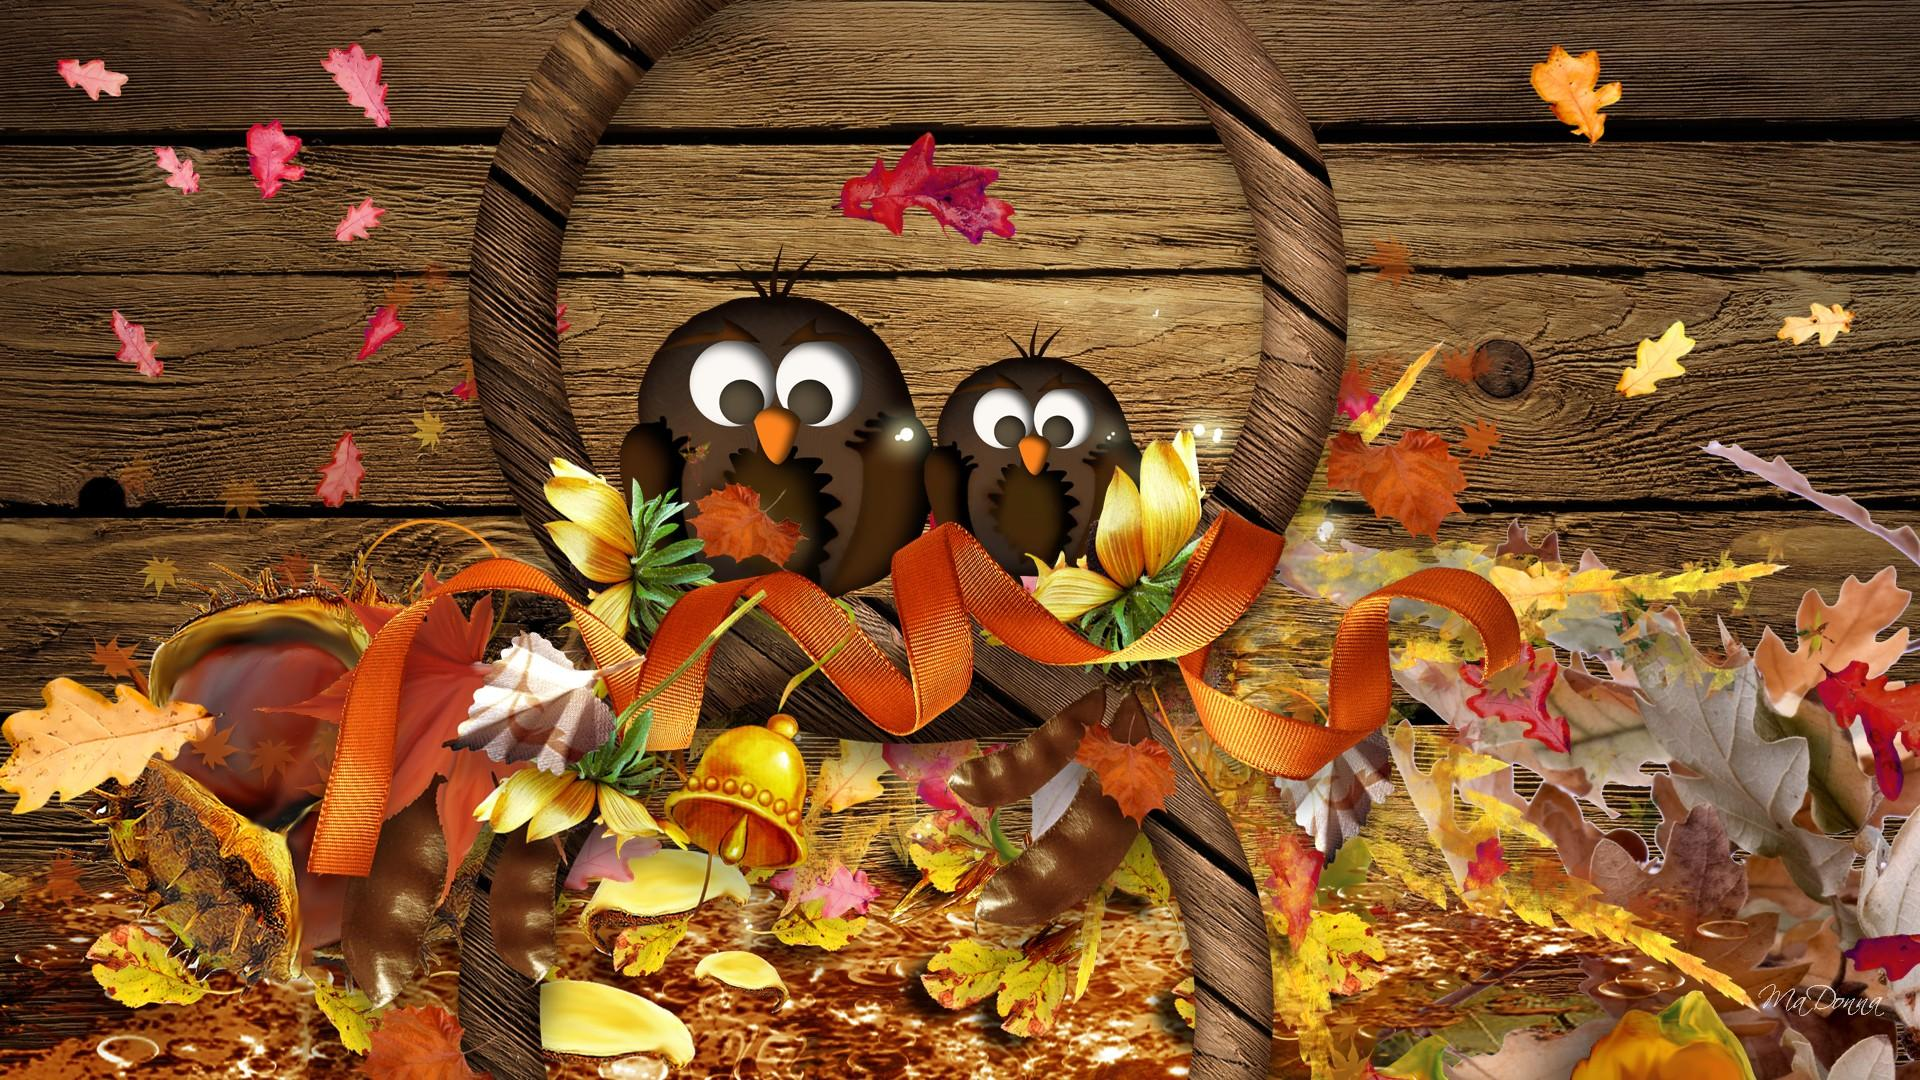 40 Thanksgiving Wallpaper and Background to try in 2016 1920x1080